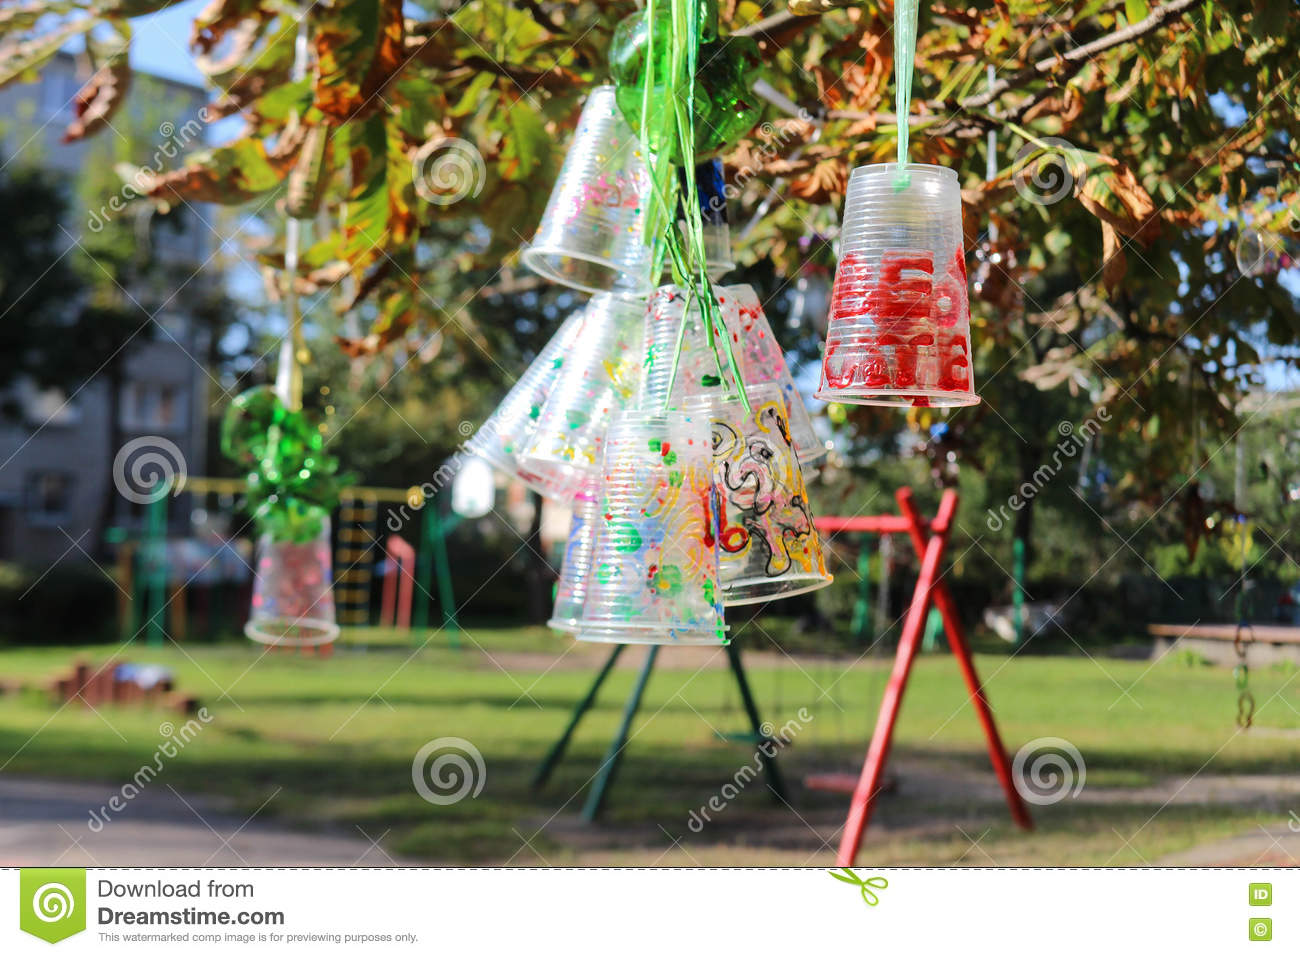 Recycle Project Of Plastic Bottles And Cups, Colored With Different ...